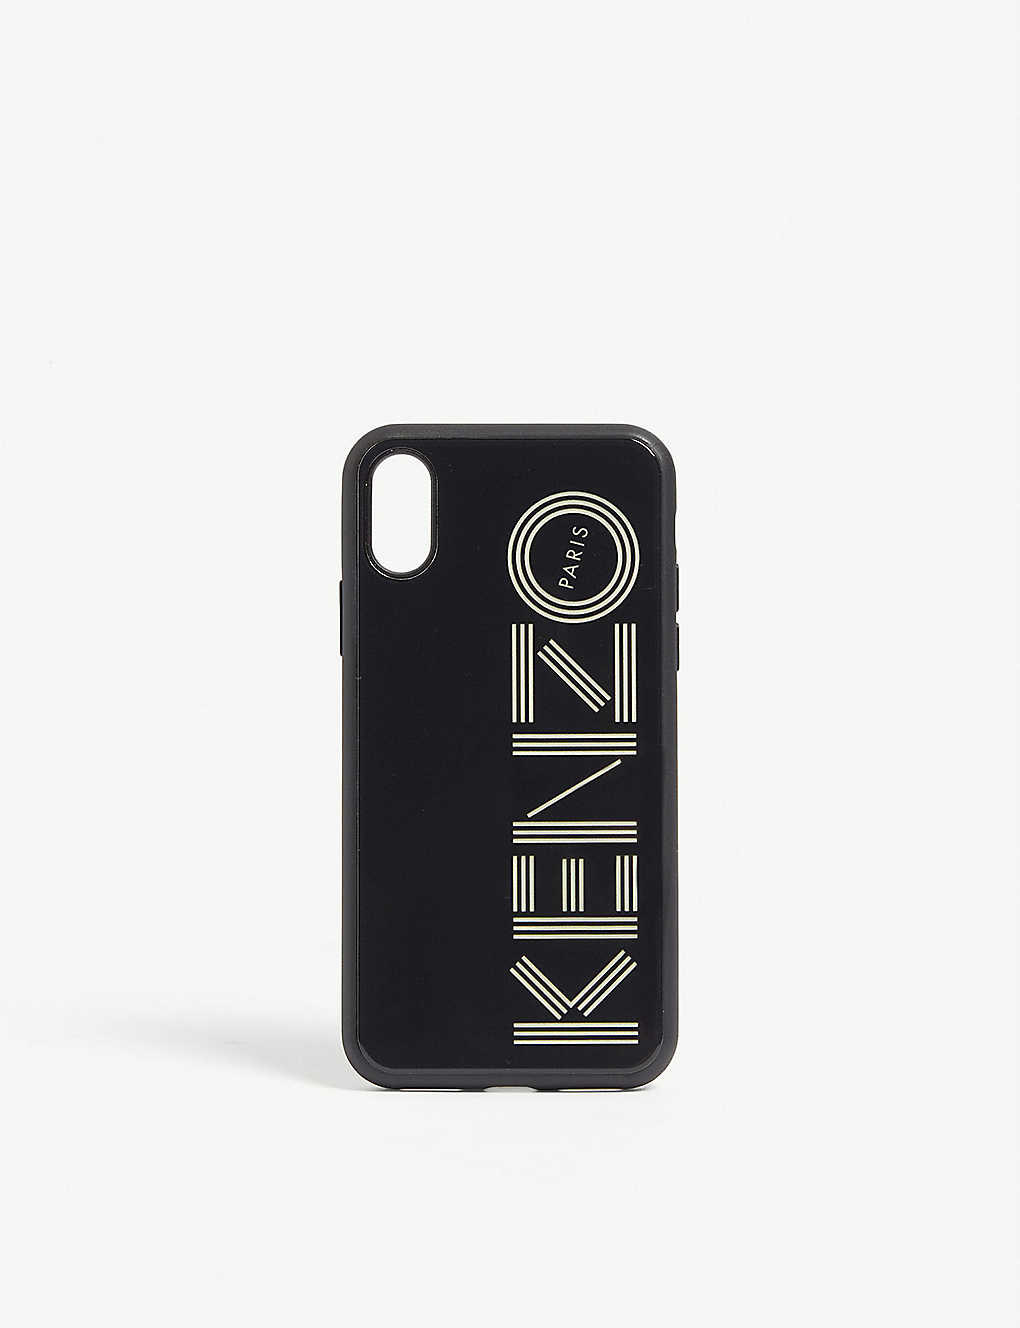 online retailer f759a 48229 Logo tempered glass iphone X case